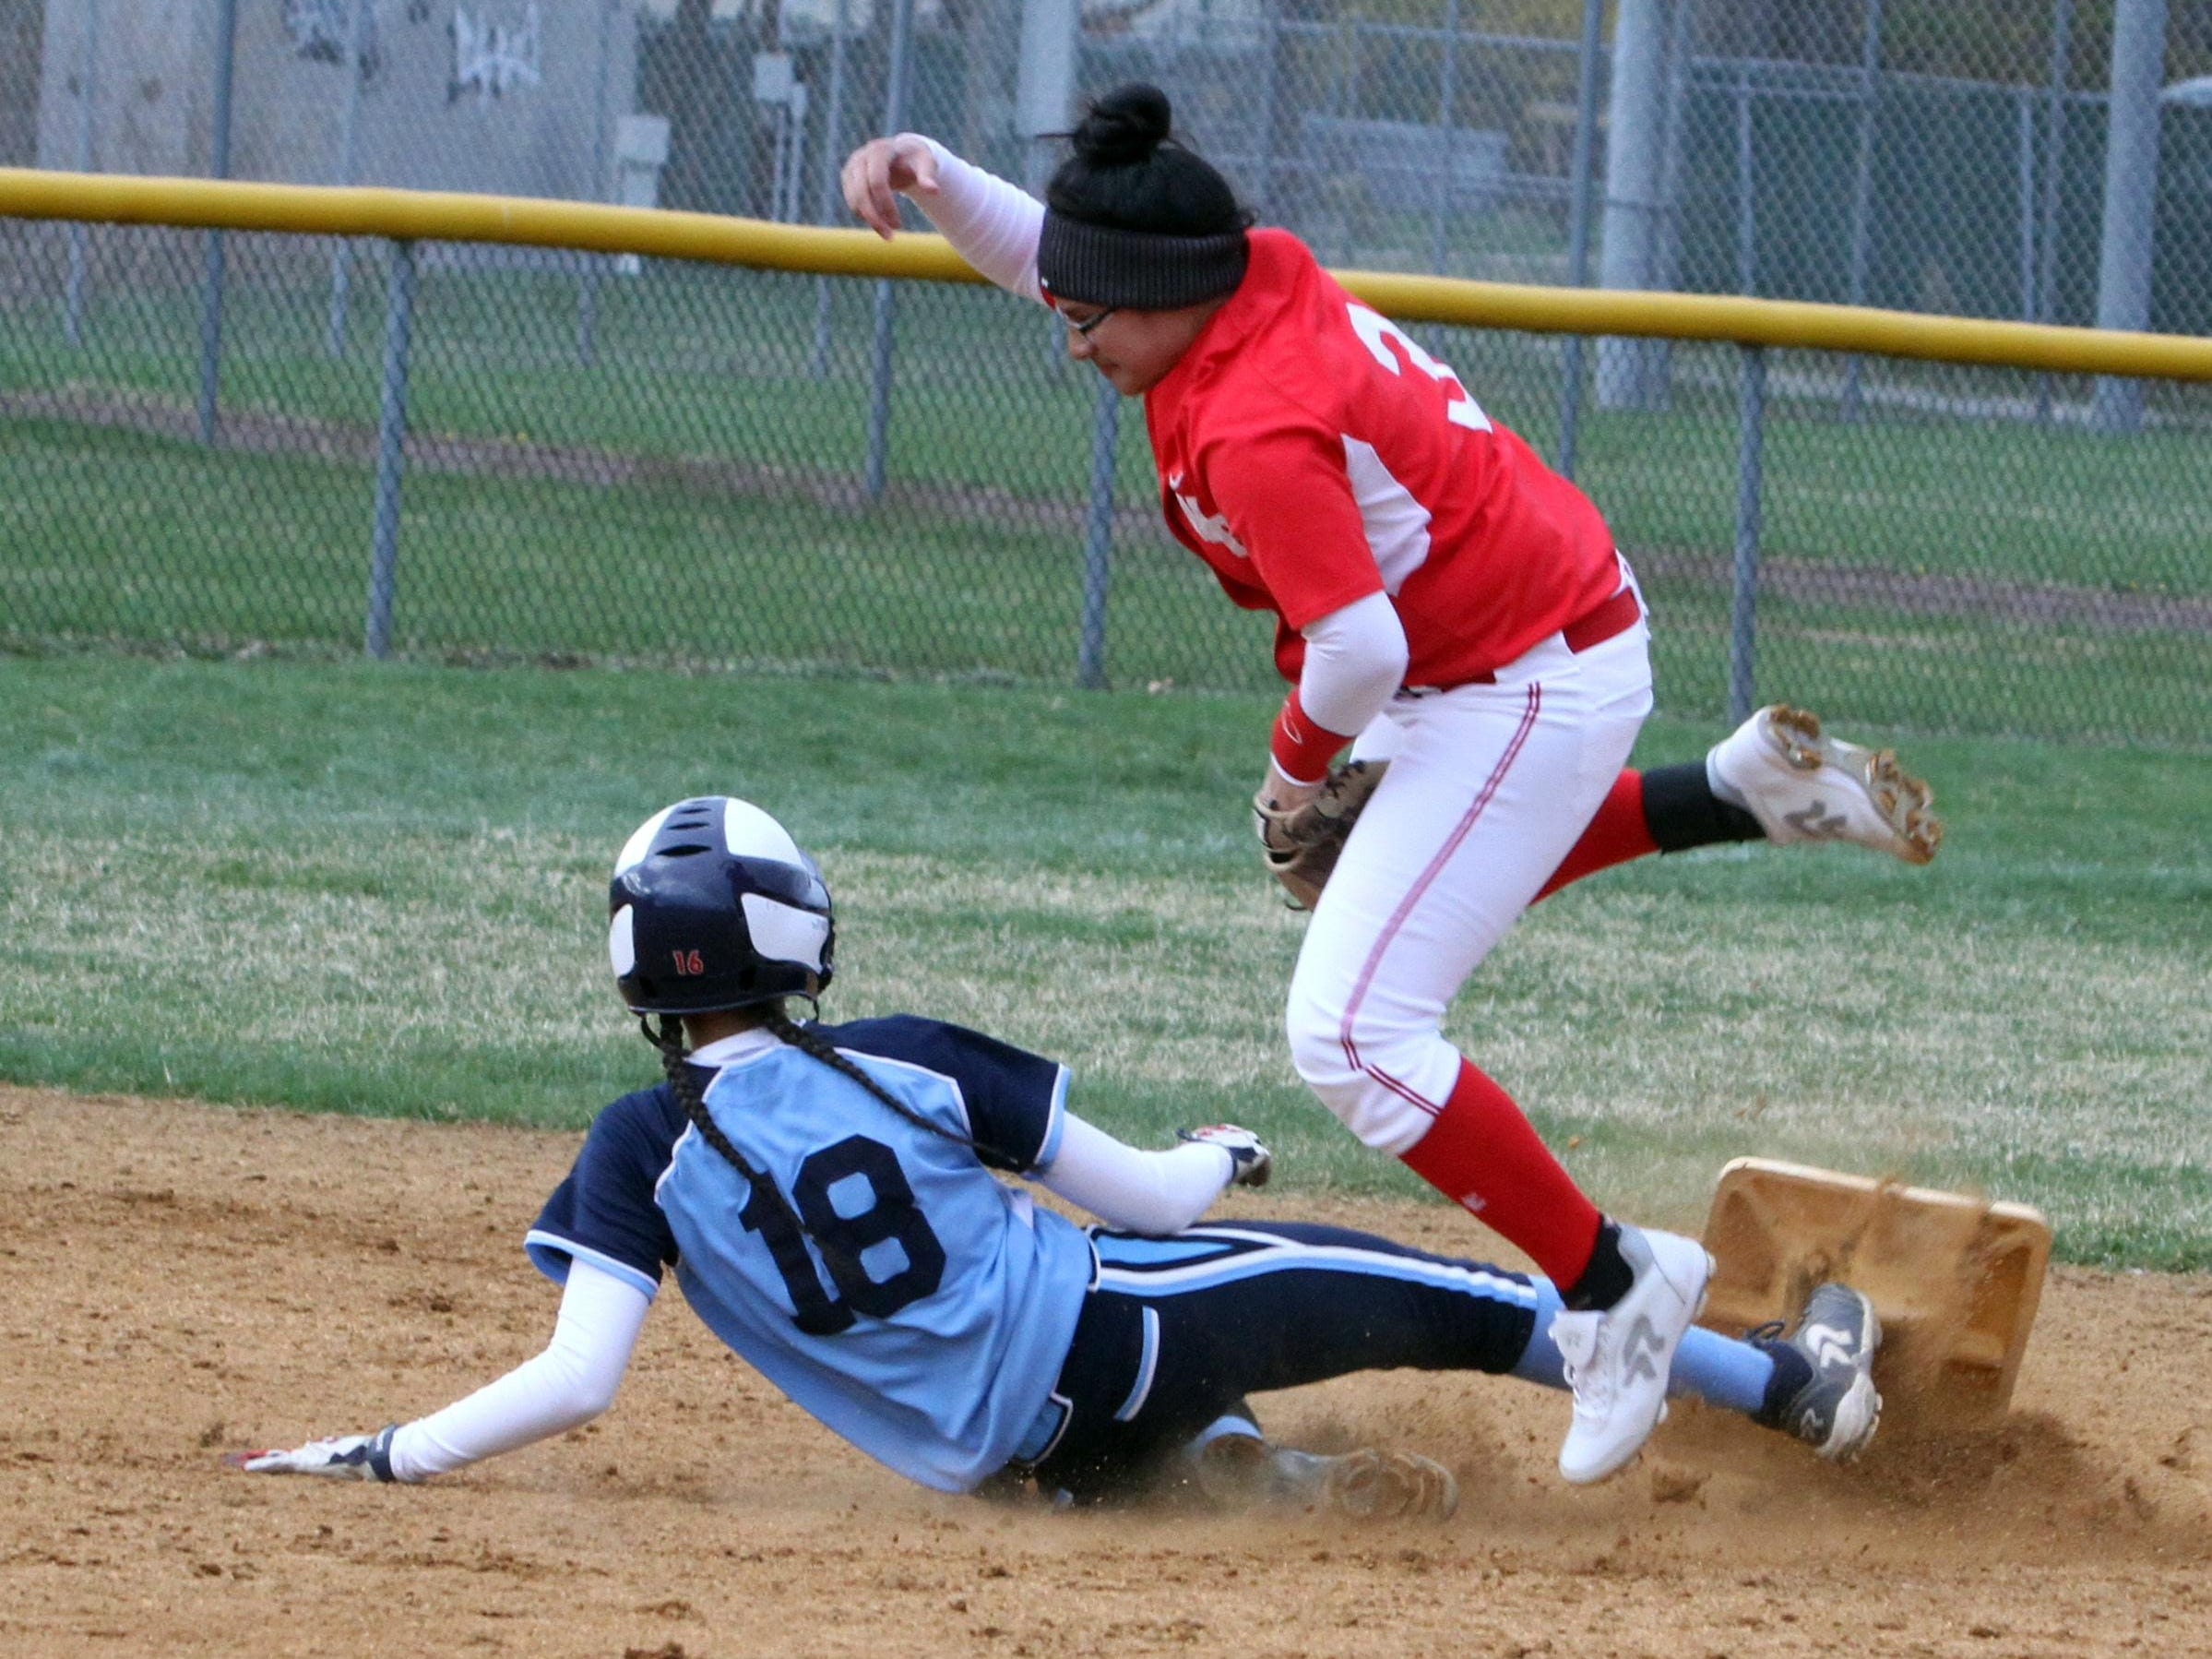 Second base goes flying as Ursuline's Korina Guerra was caught stealing by North Rockland's Deangie Jimenez during a varsity softball game at North Rockland High School April 7, 2016. North Rockland defeated Ursuline 6-5.